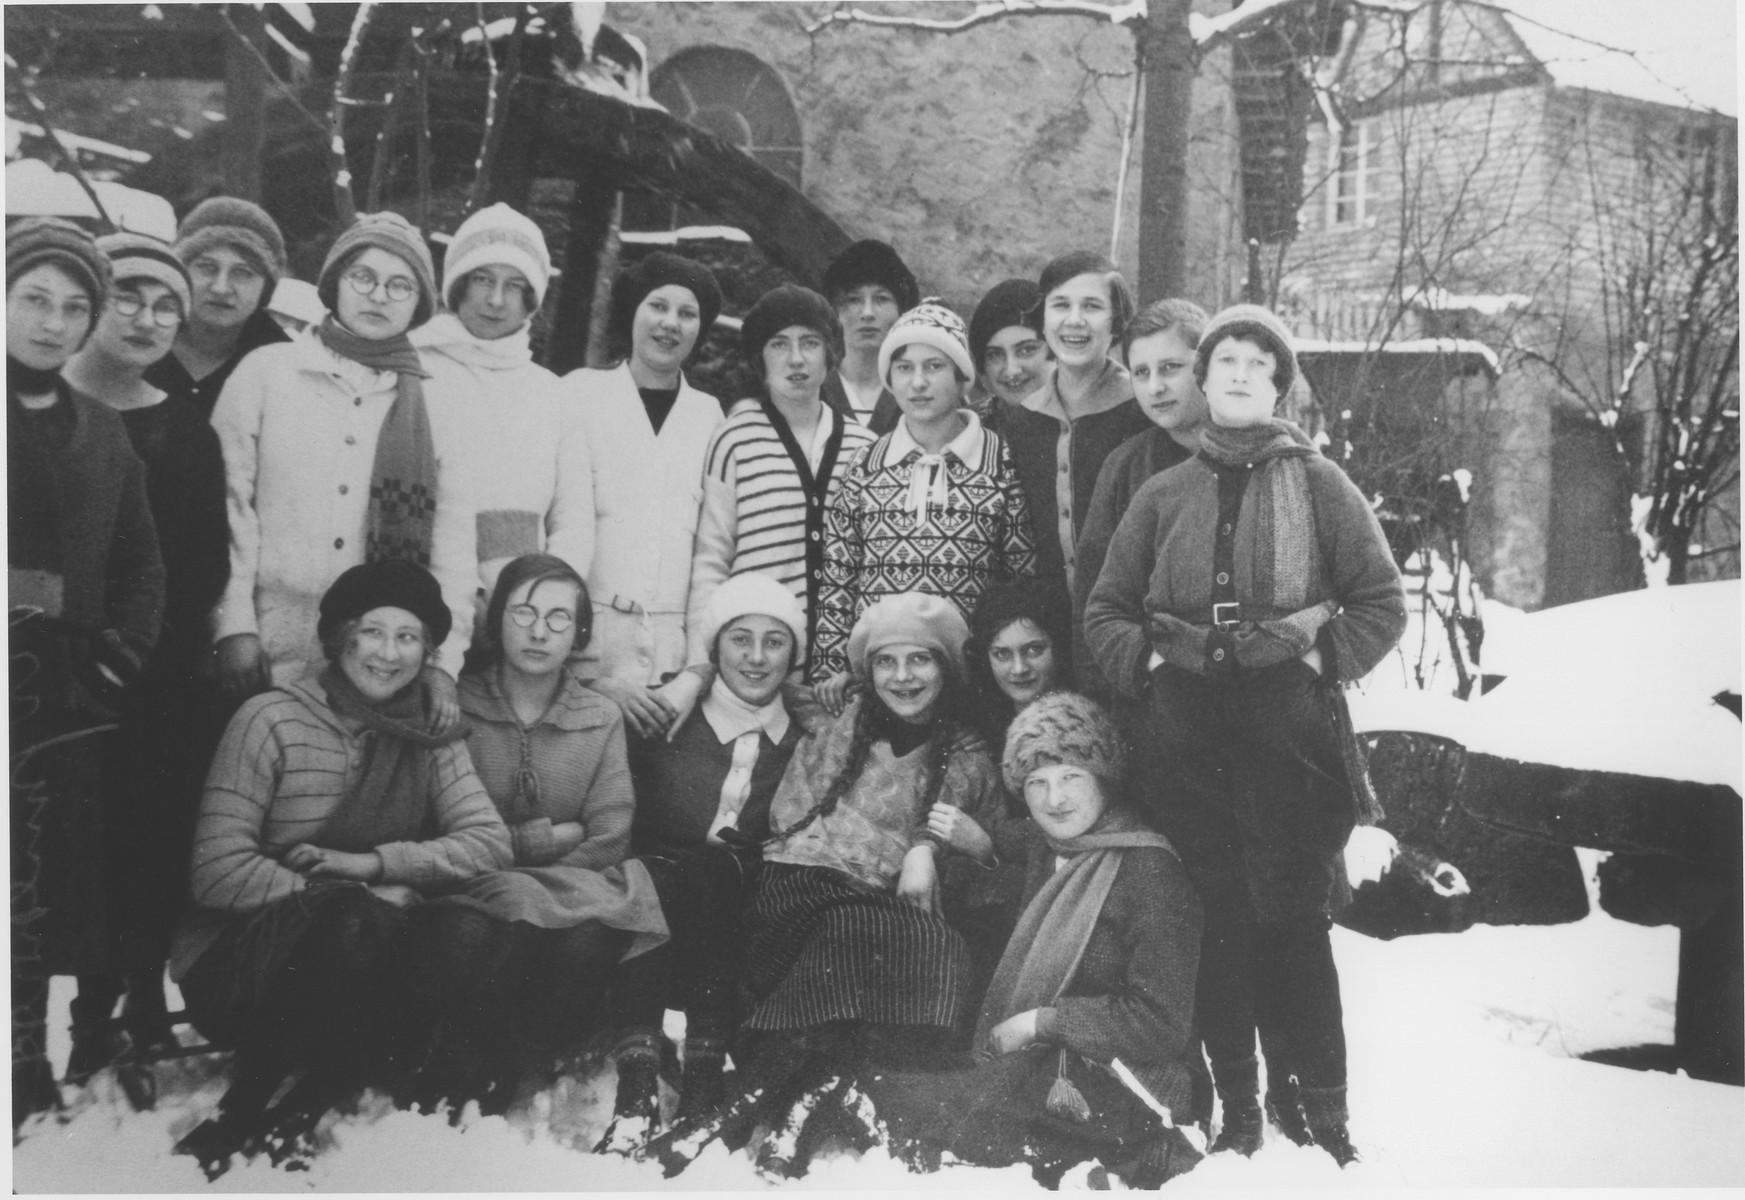 Group portrait of school girls on a winter outing.  Among those pictured is Hede Rueb (standing fourth from the right, behind two girls).